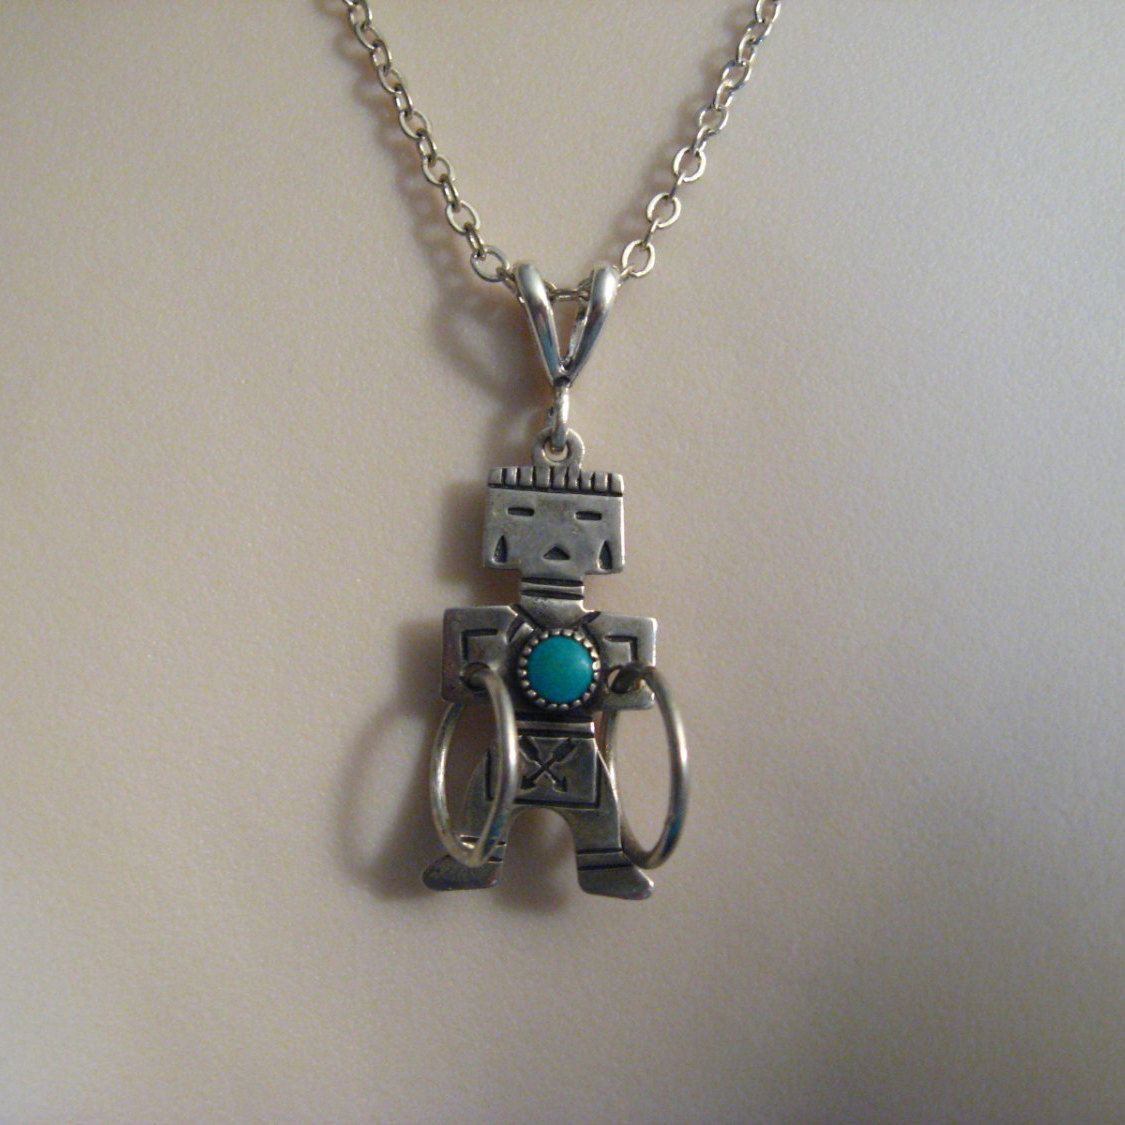 Sterling Silver Native American Turquoise Kachina Pendant Necklace Vintage Jewelry by VintageJoolsAndMore on Etsy